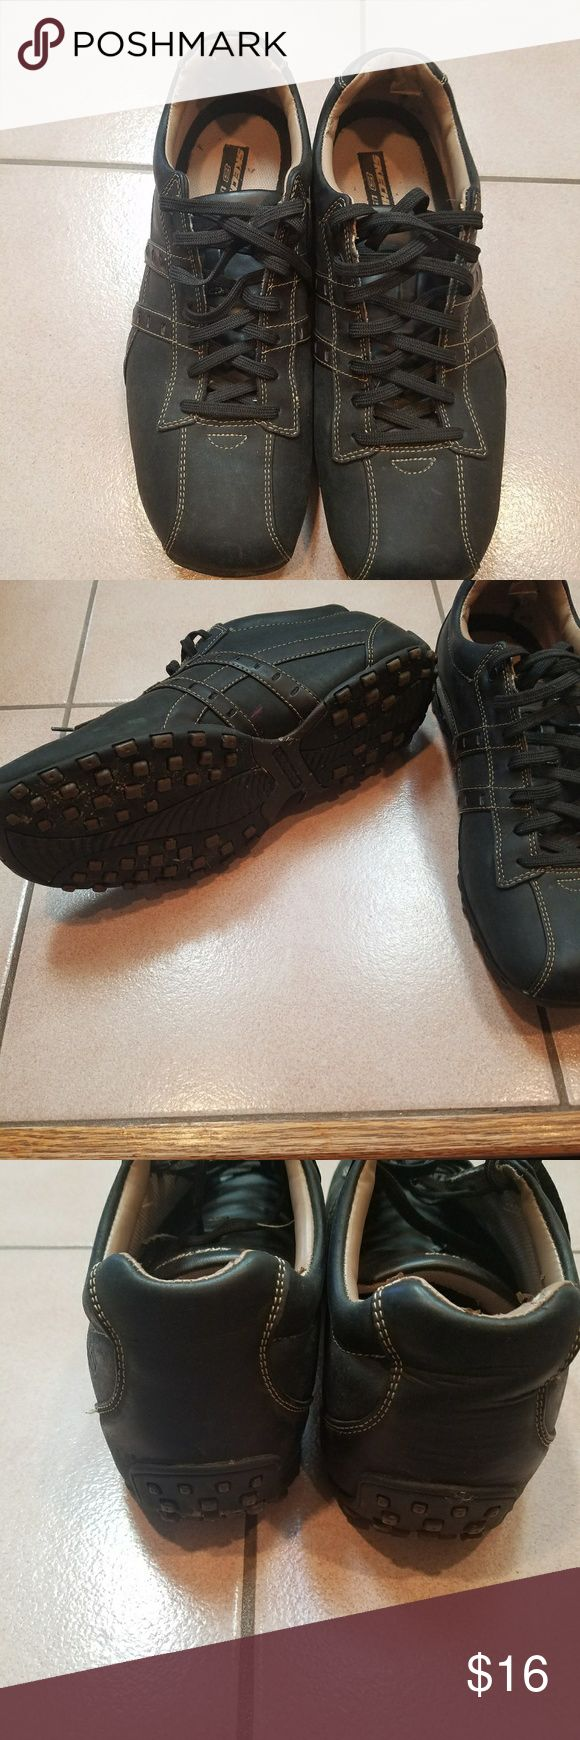 Shoes for men Fair wear with any outfit Skechers Shoes Loafers & Slip-Ons